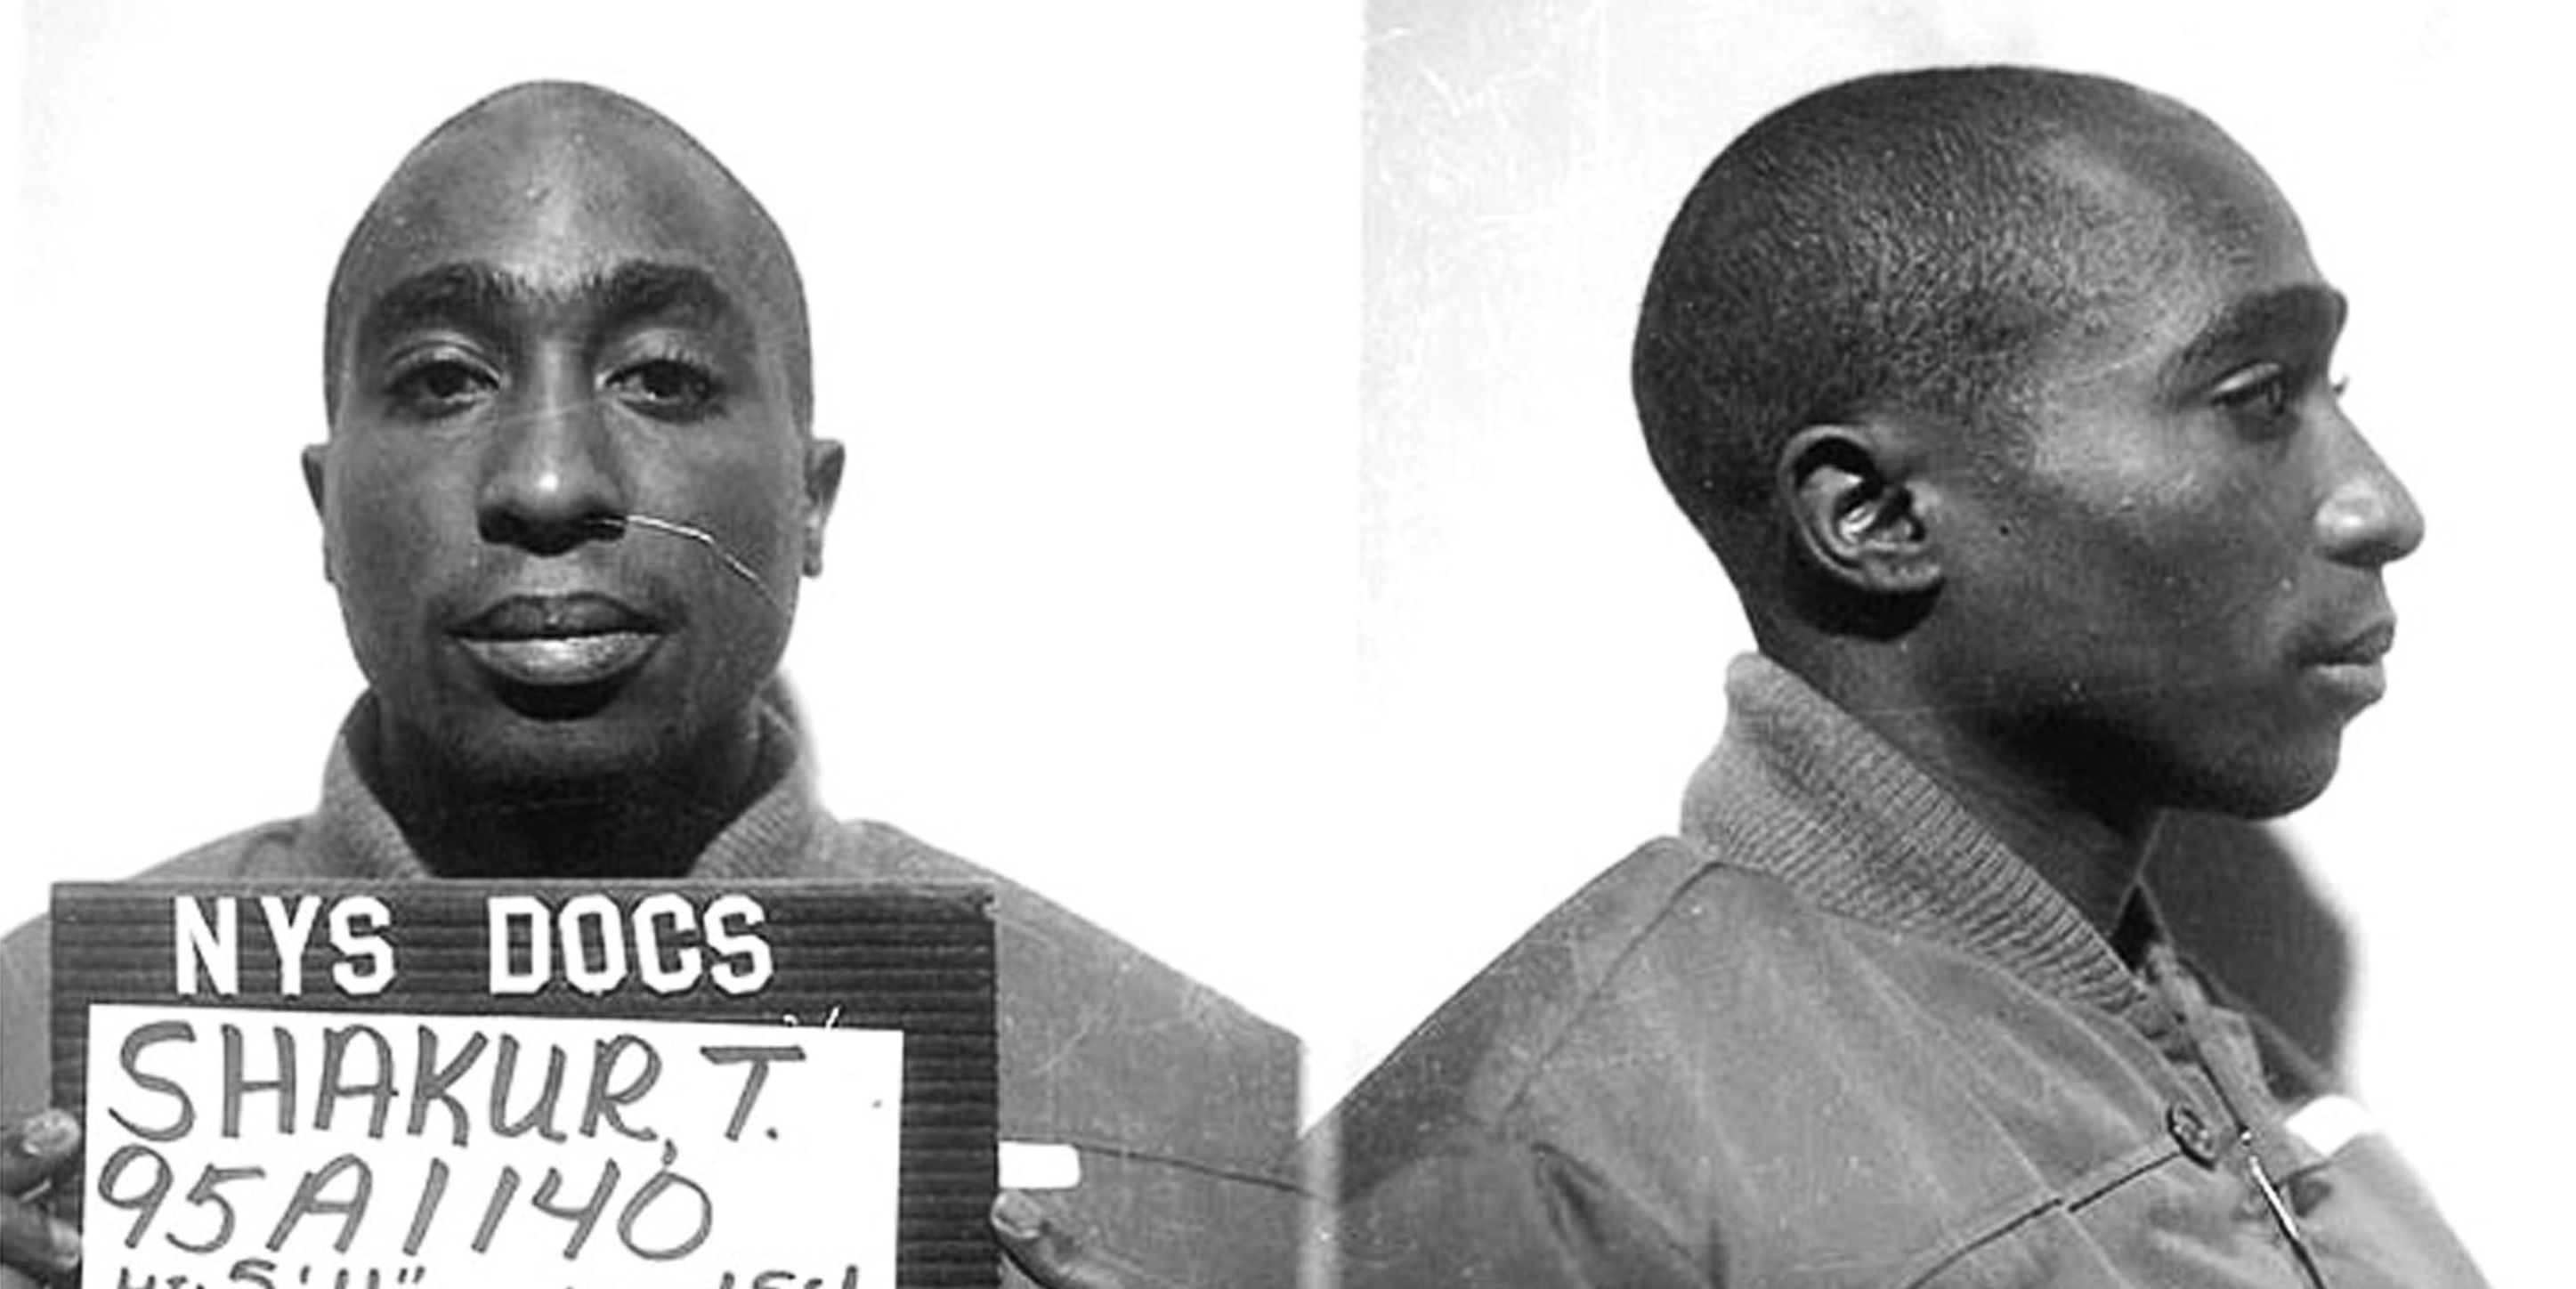 Tupac shakur mugshot criminal history and death